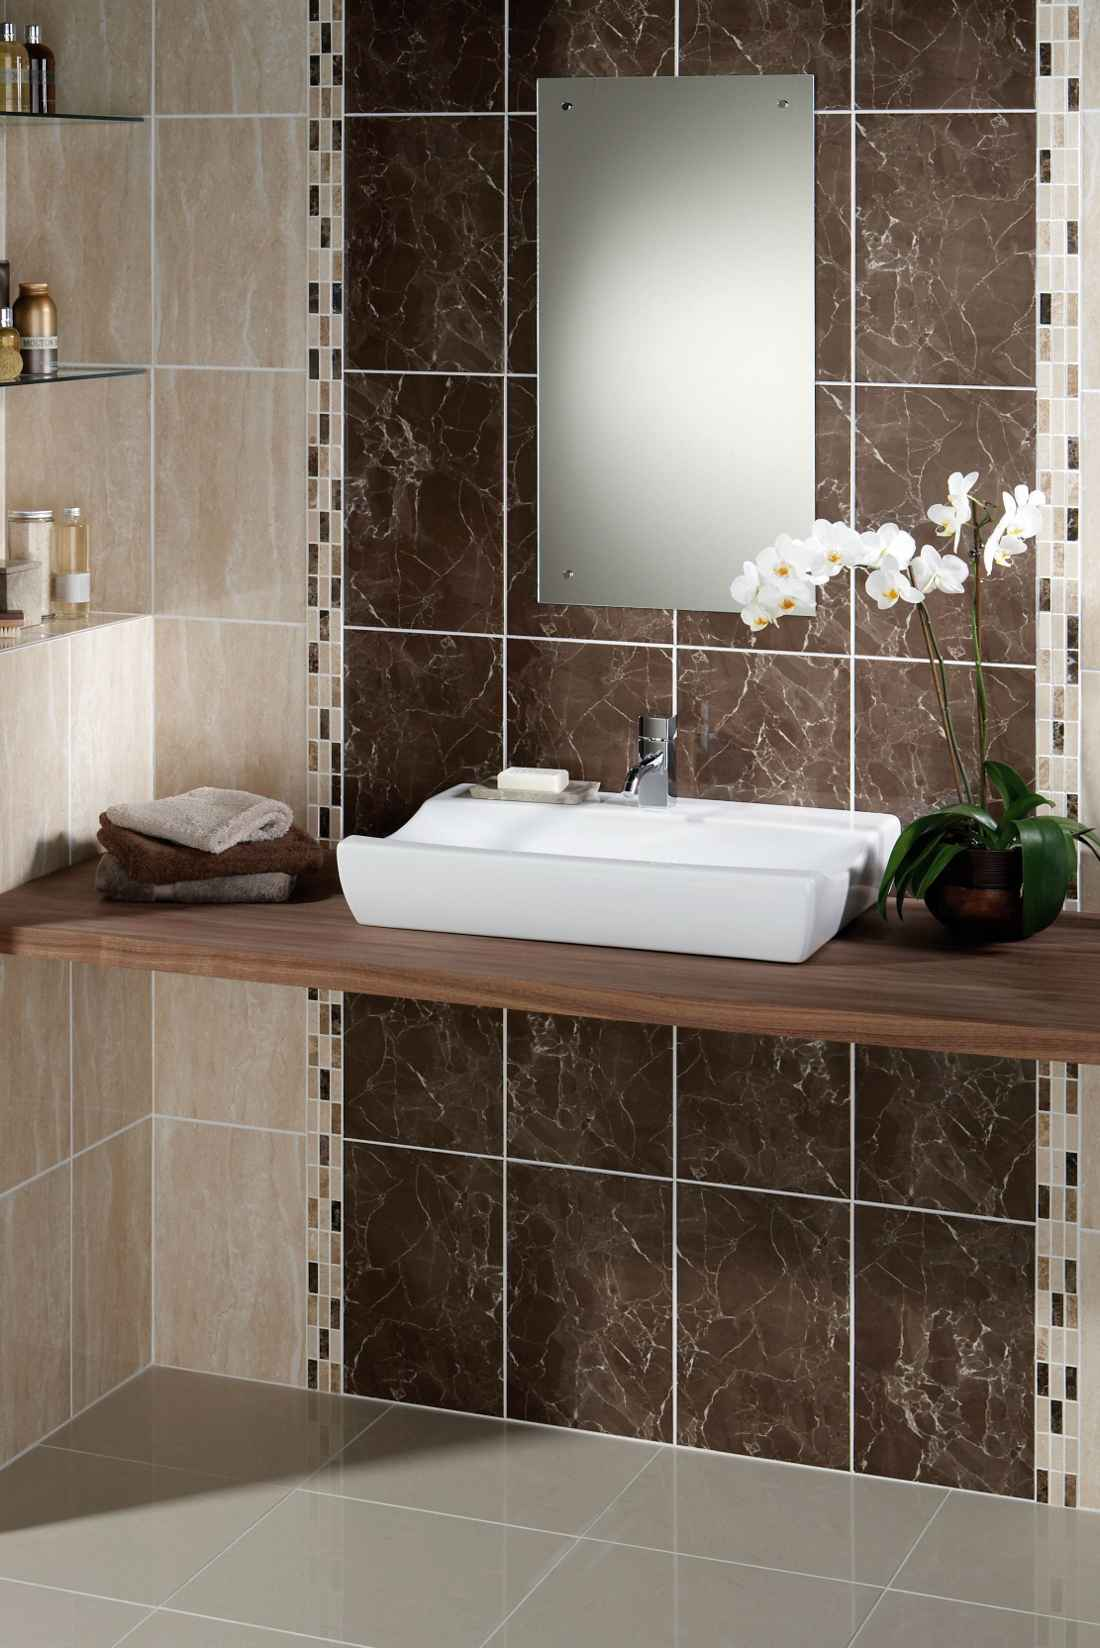 Decorated brown porcelain bathroom tiles